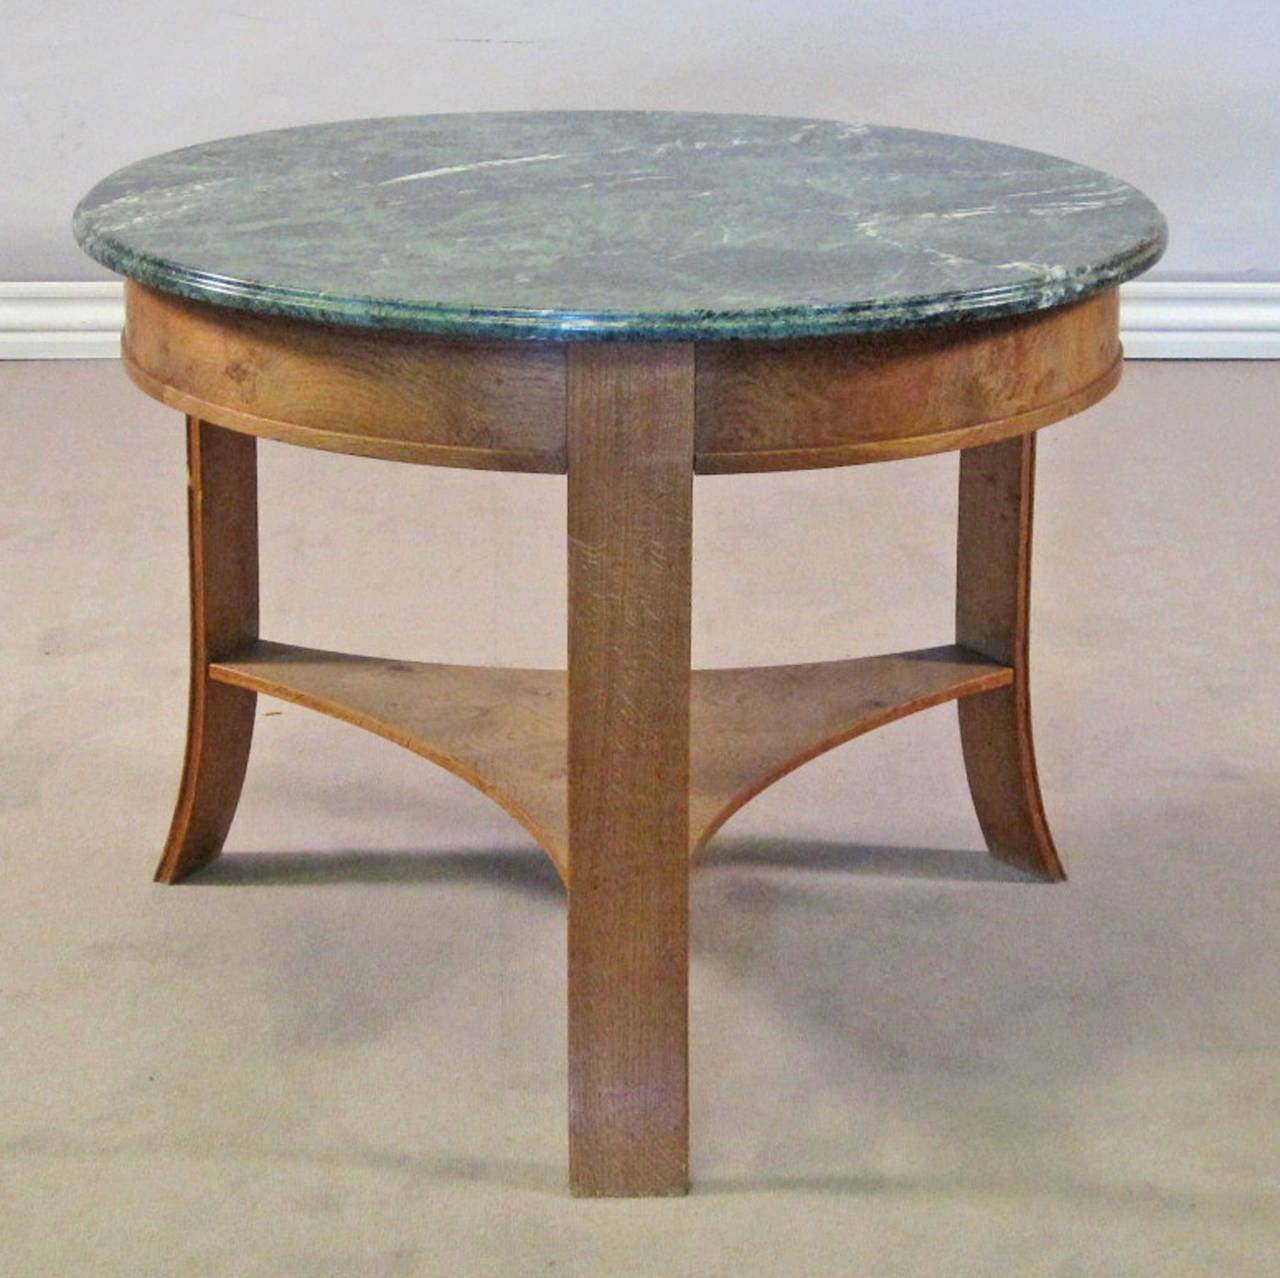 1940s1950s circular oak center table with green marble top 2